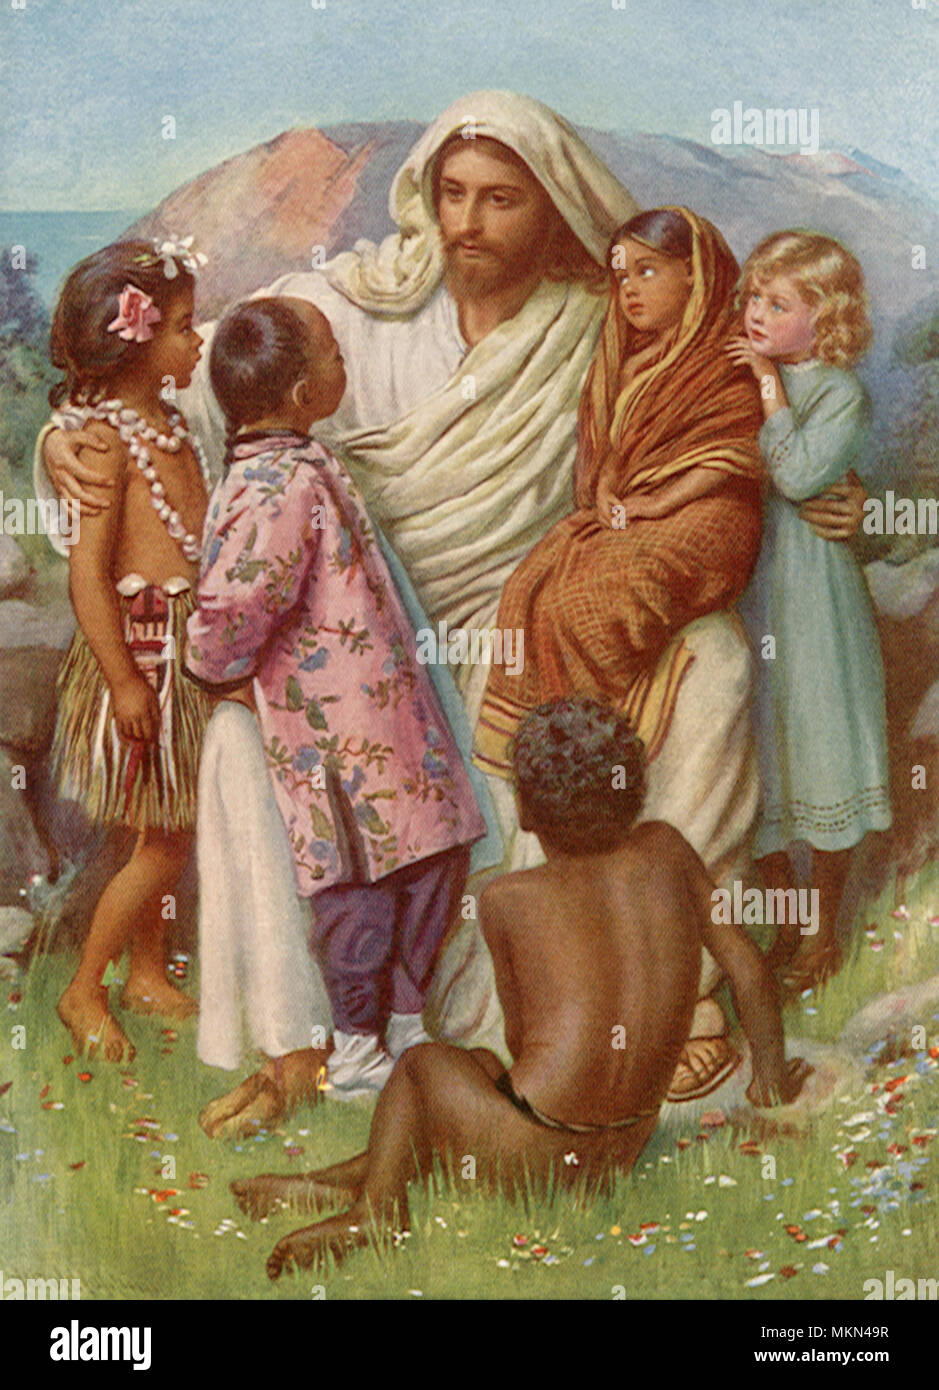 Jesus Christ Surrounded By Children Stock Photo Alamy